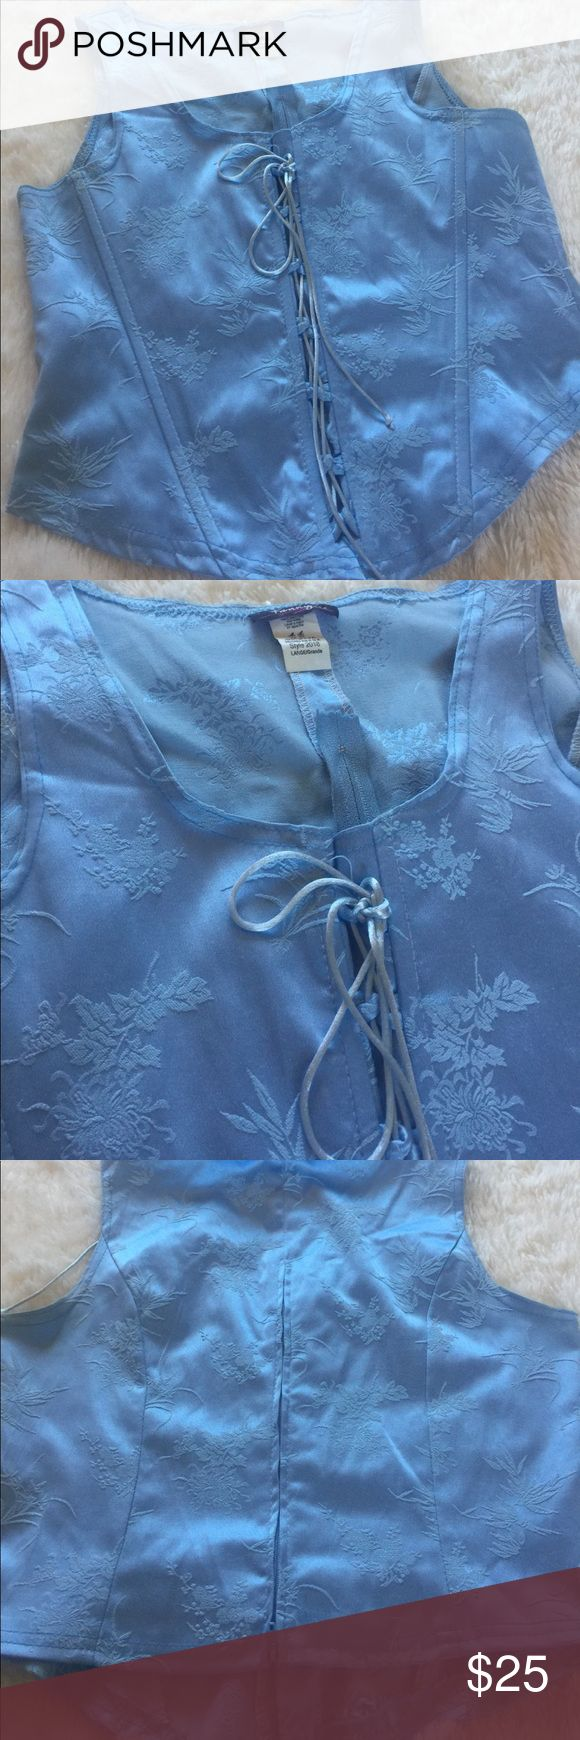 Corset blouse Back zip, fitted like a corset, front lace. Perfect under jacket or outer blouse. fanny Tops Camisoles